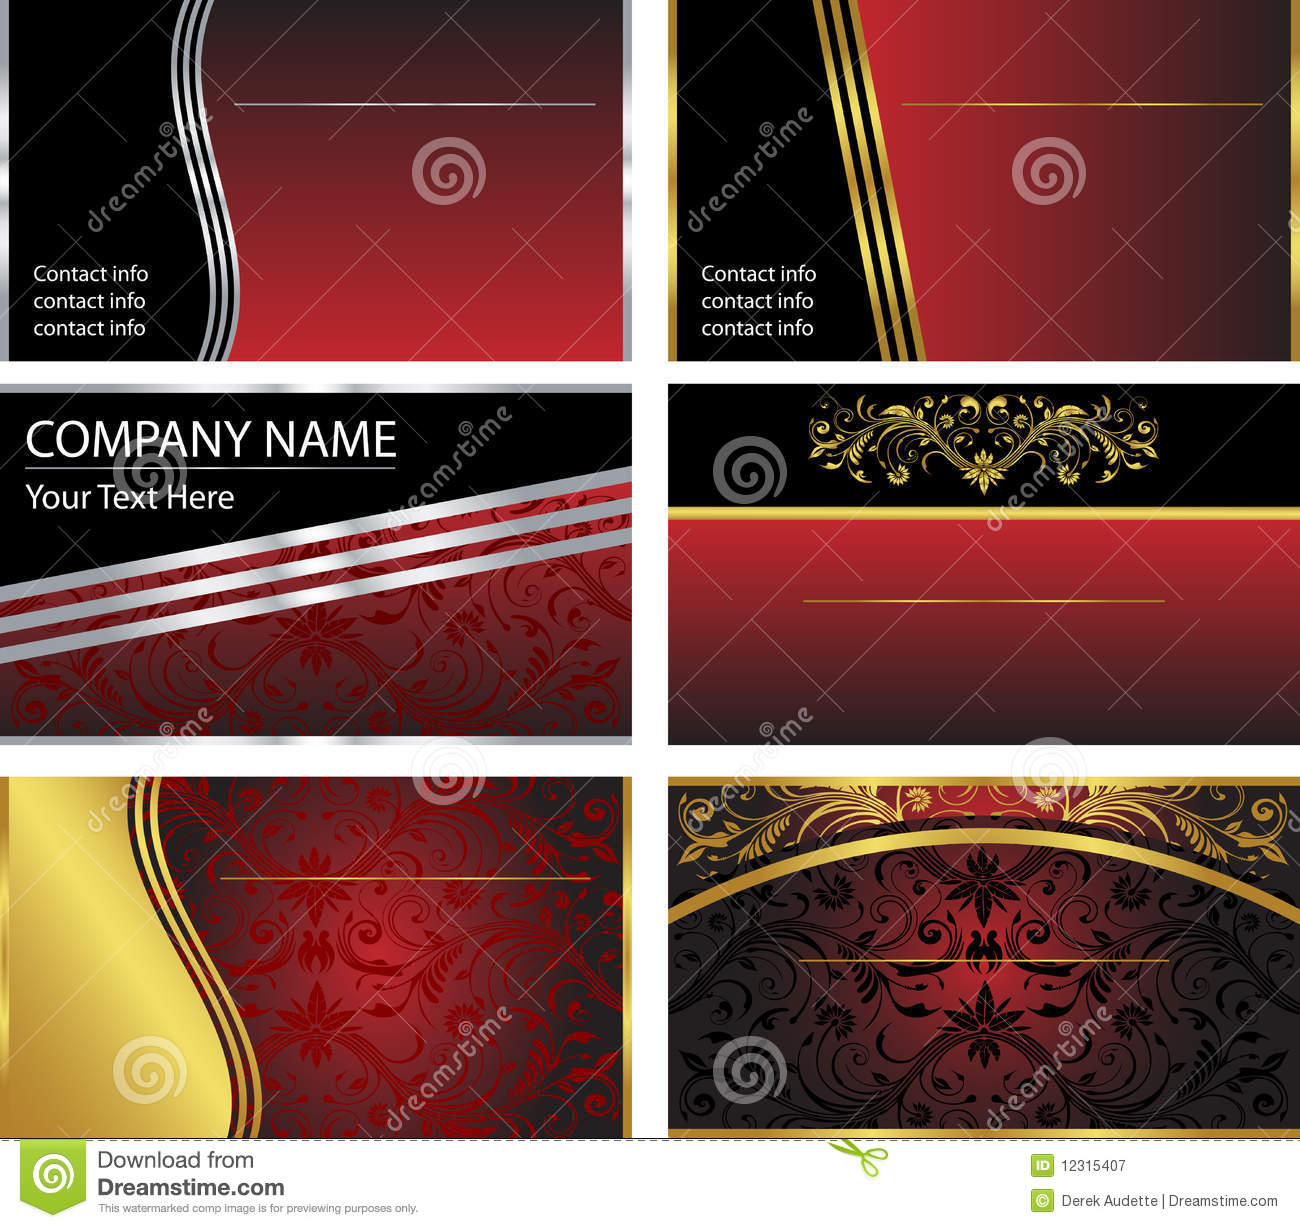 Six vector business card templates stock vector illustration of six vector business card templates reheart Gallery